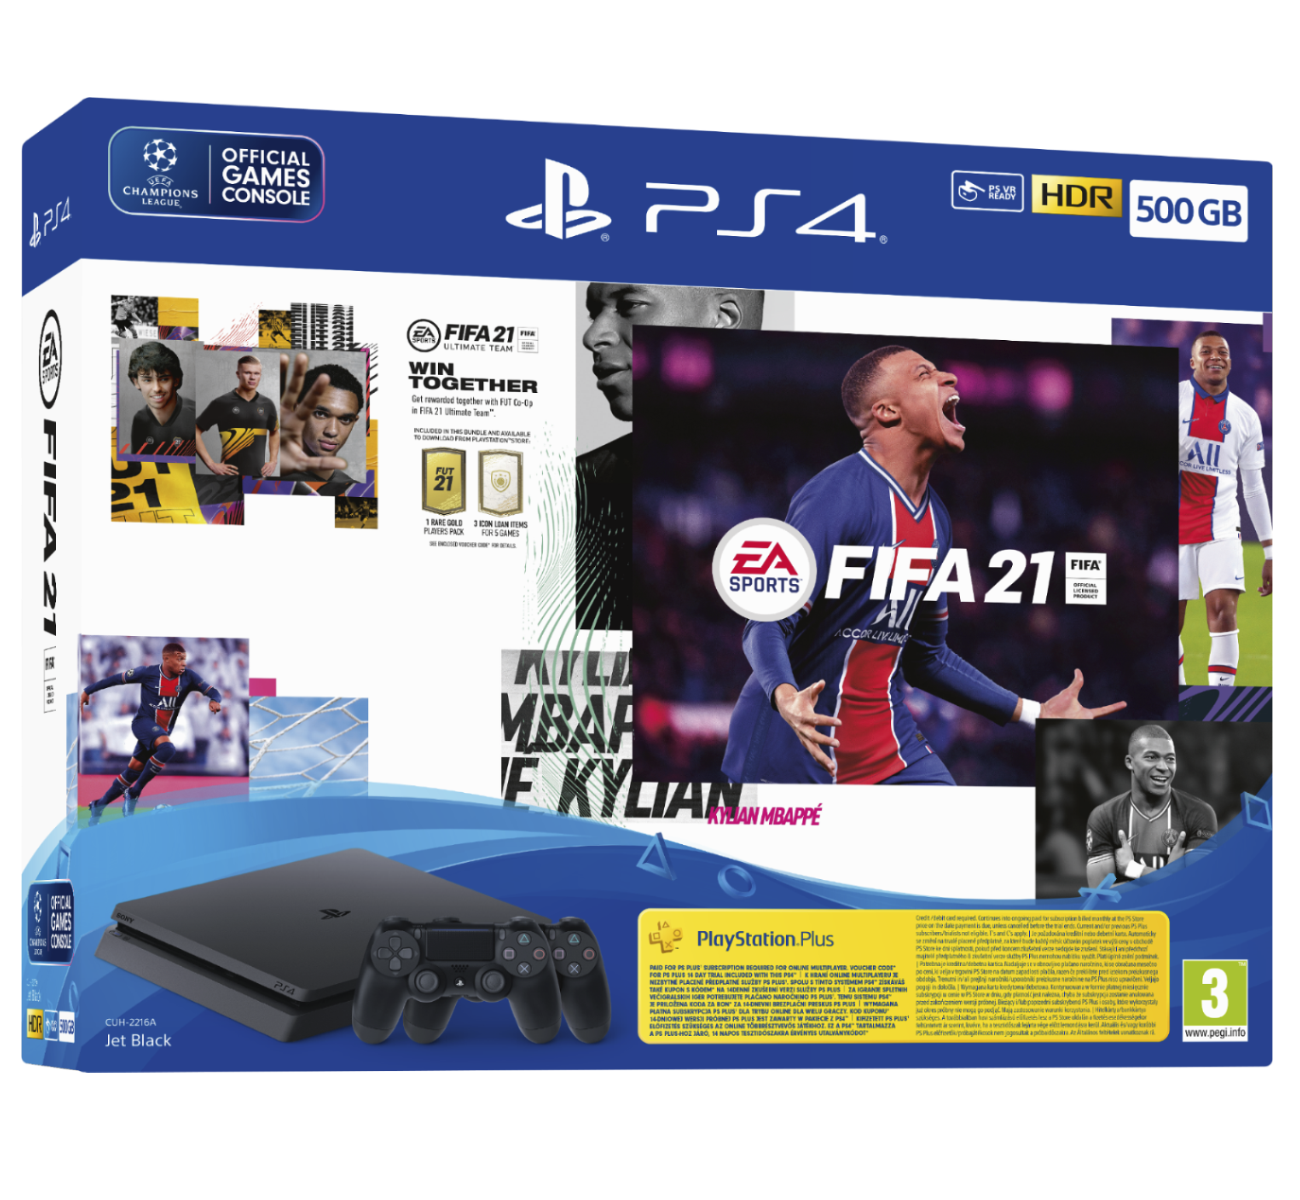 PS4 + FIFA21 + 2xDS4